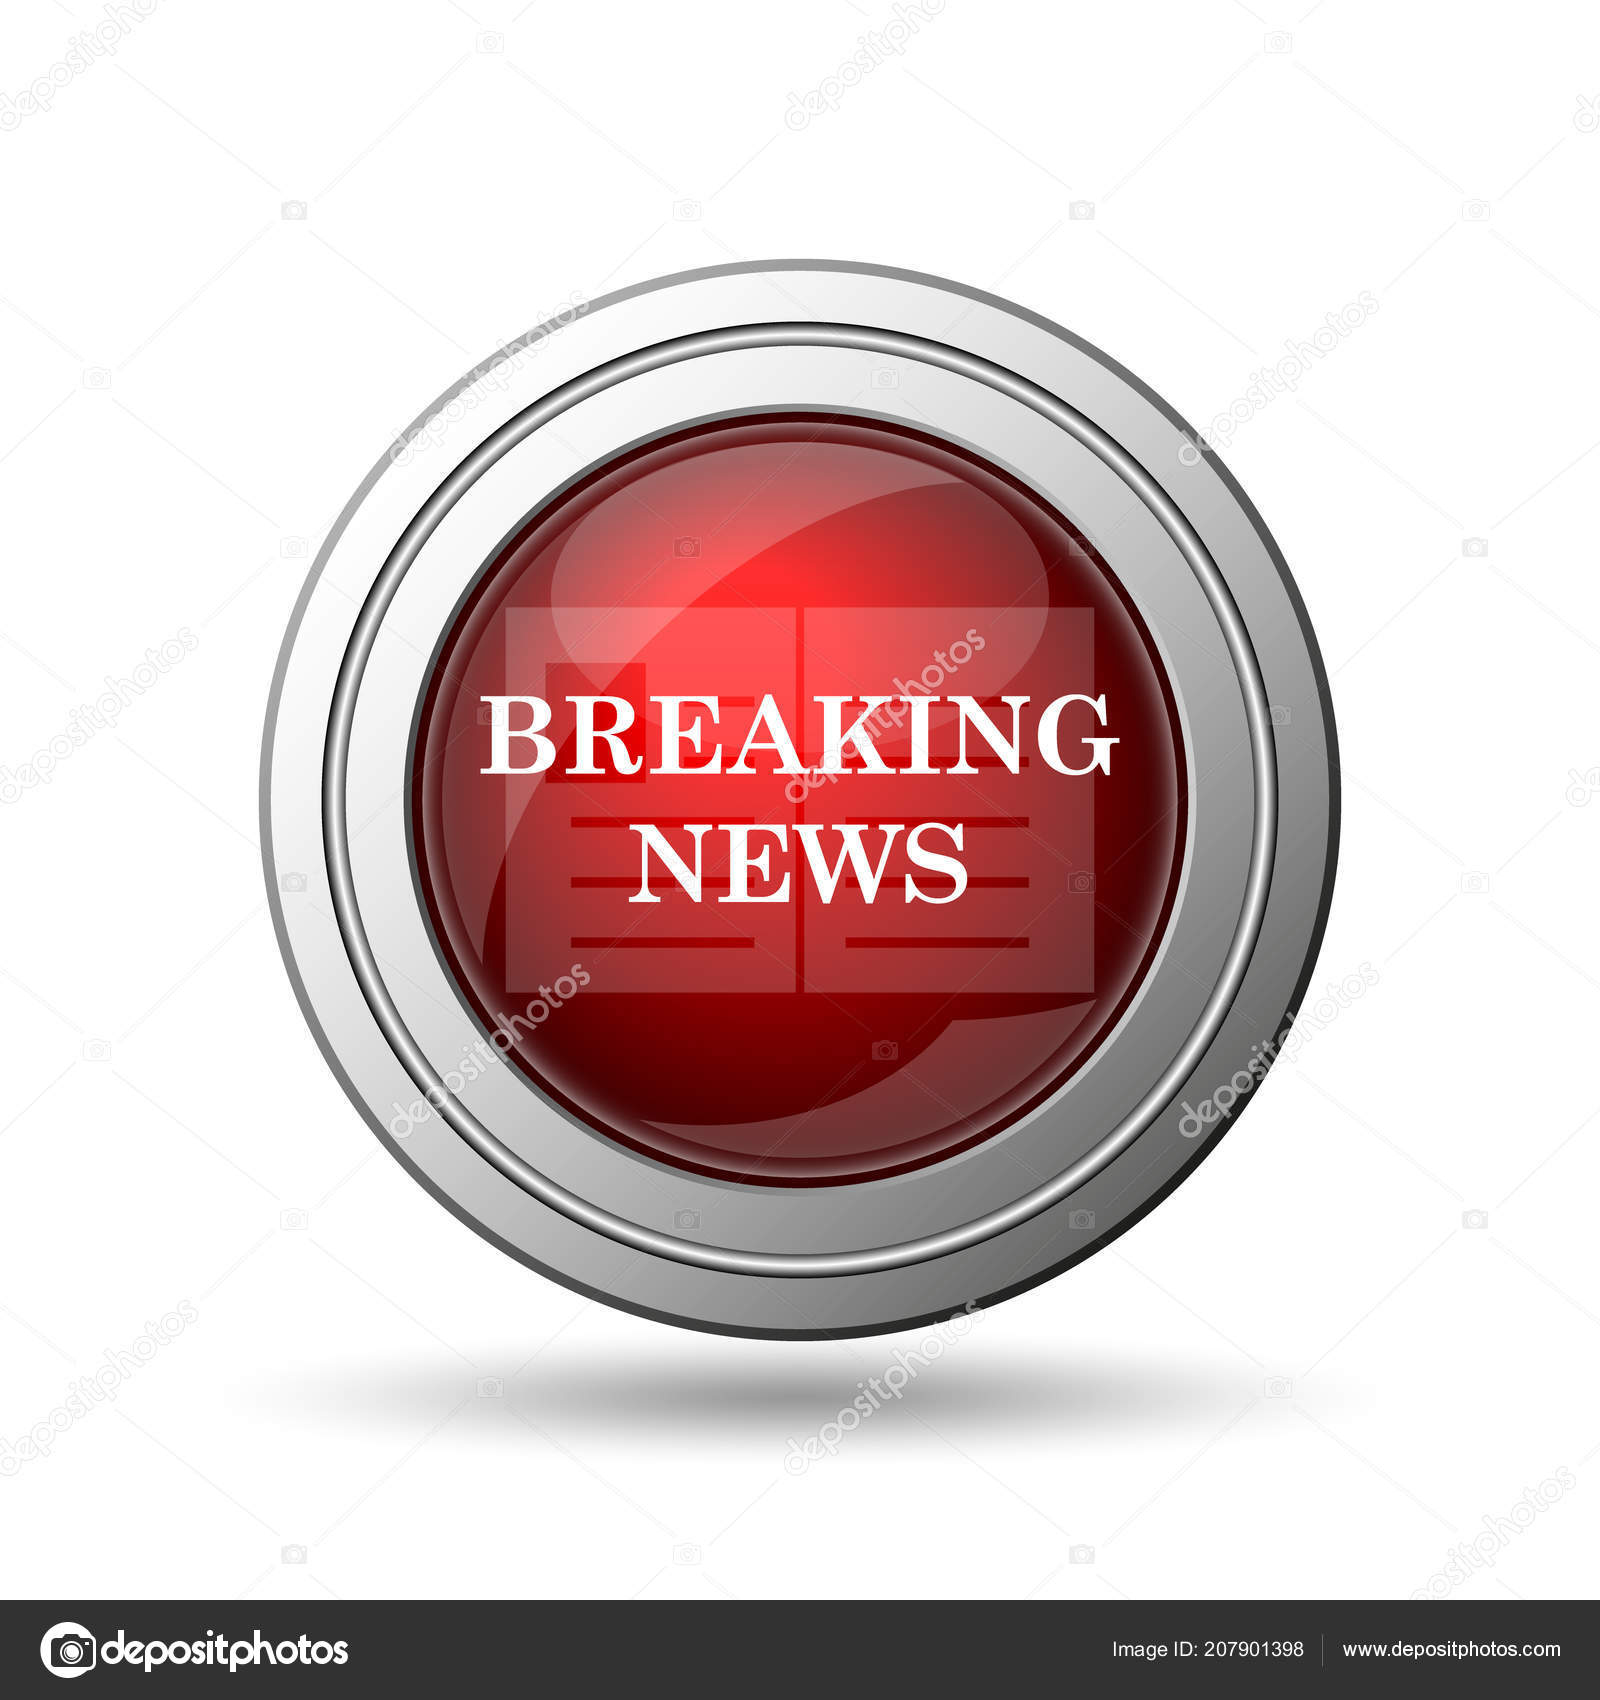 Breaking news icon — Stock Photo © valentint #207901398